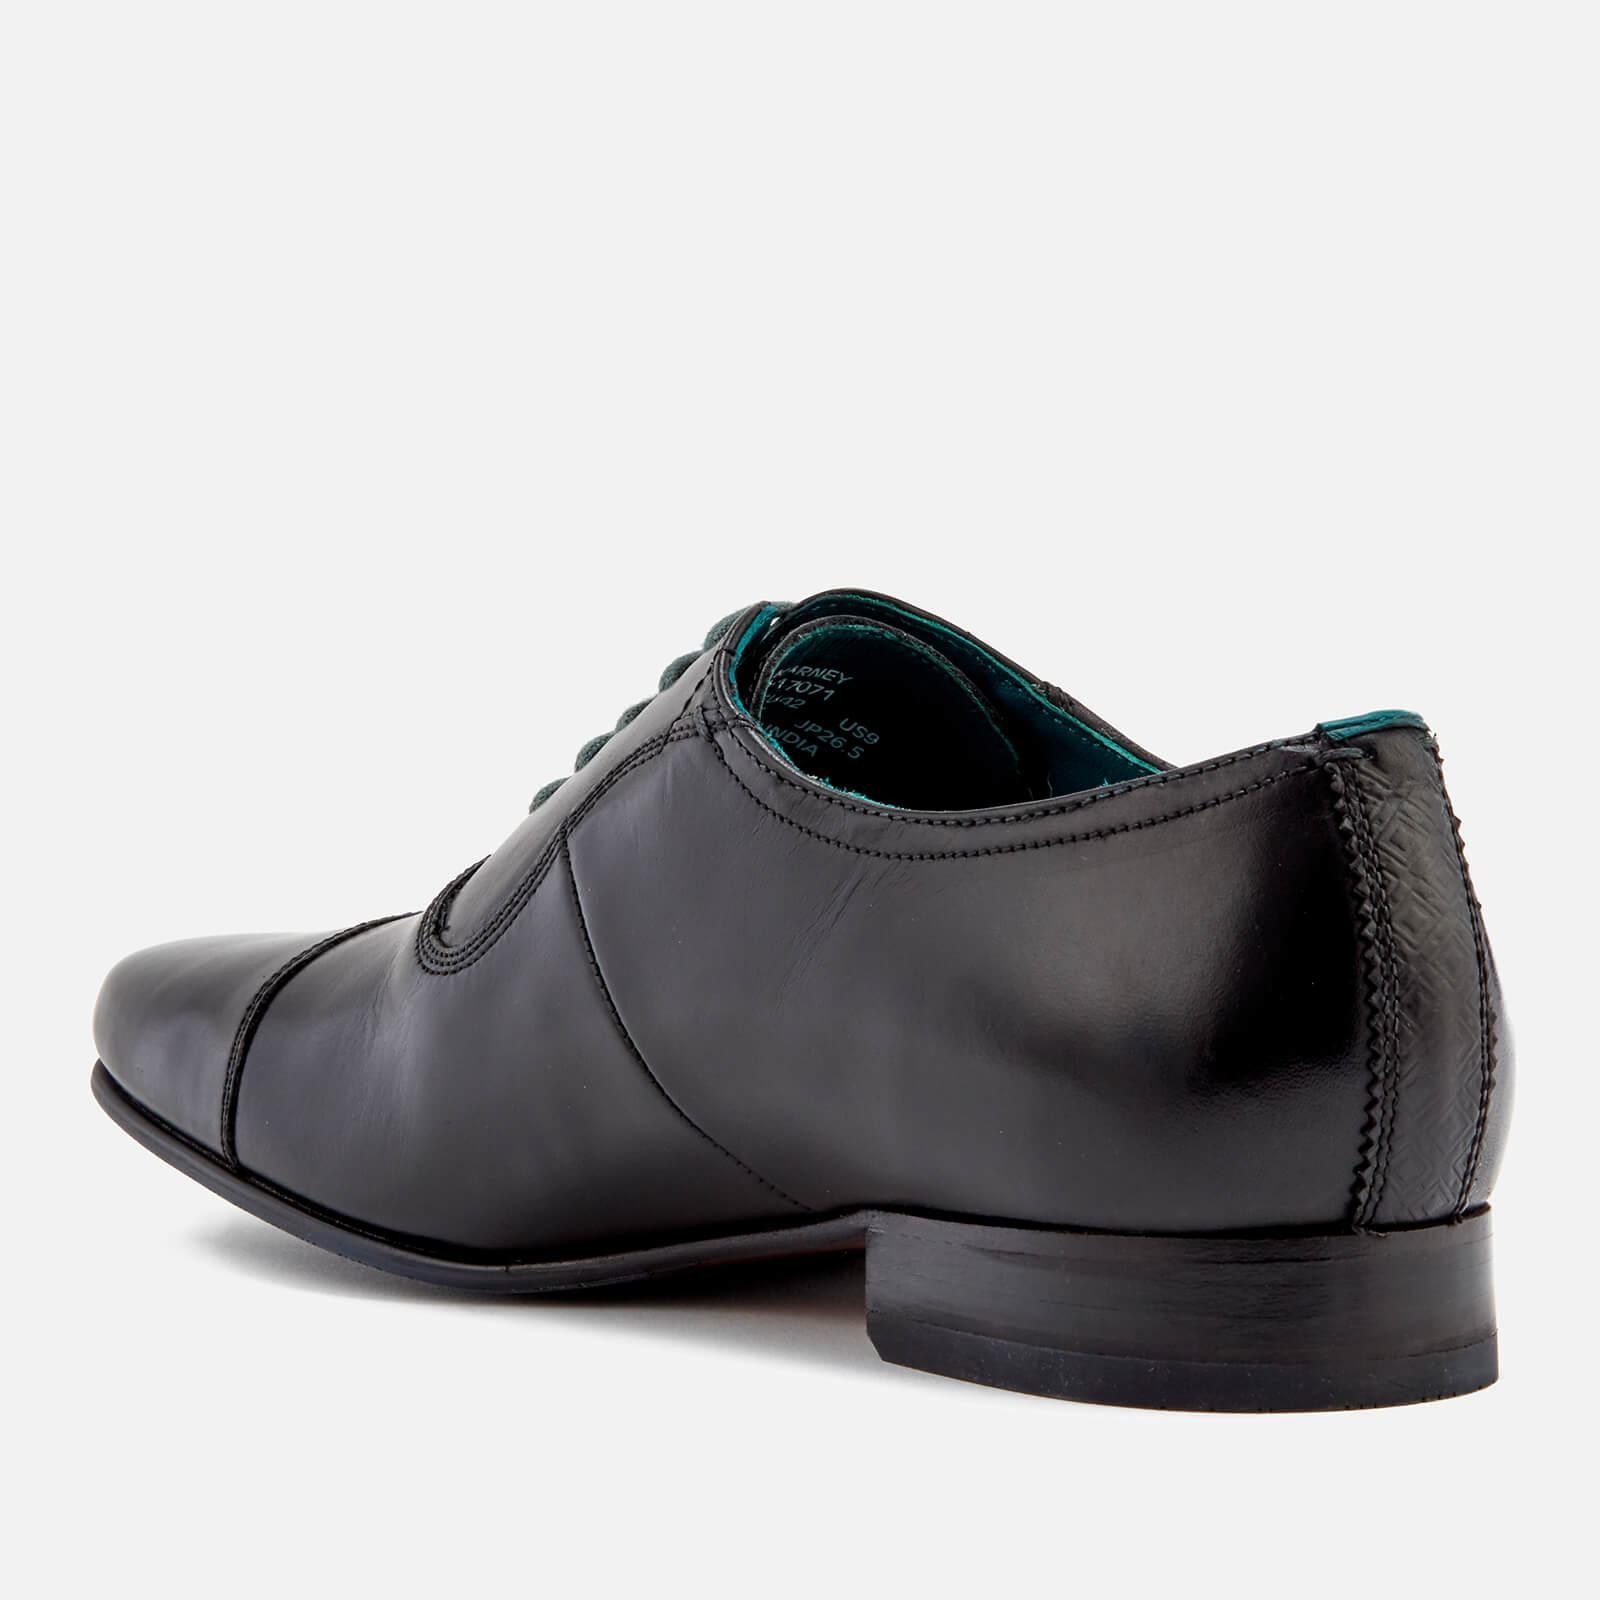 802356637d02 Ted Baker - Black Karney Leather Toe Cap Oxford Shoes for Men - Lyst. View  fullscreen